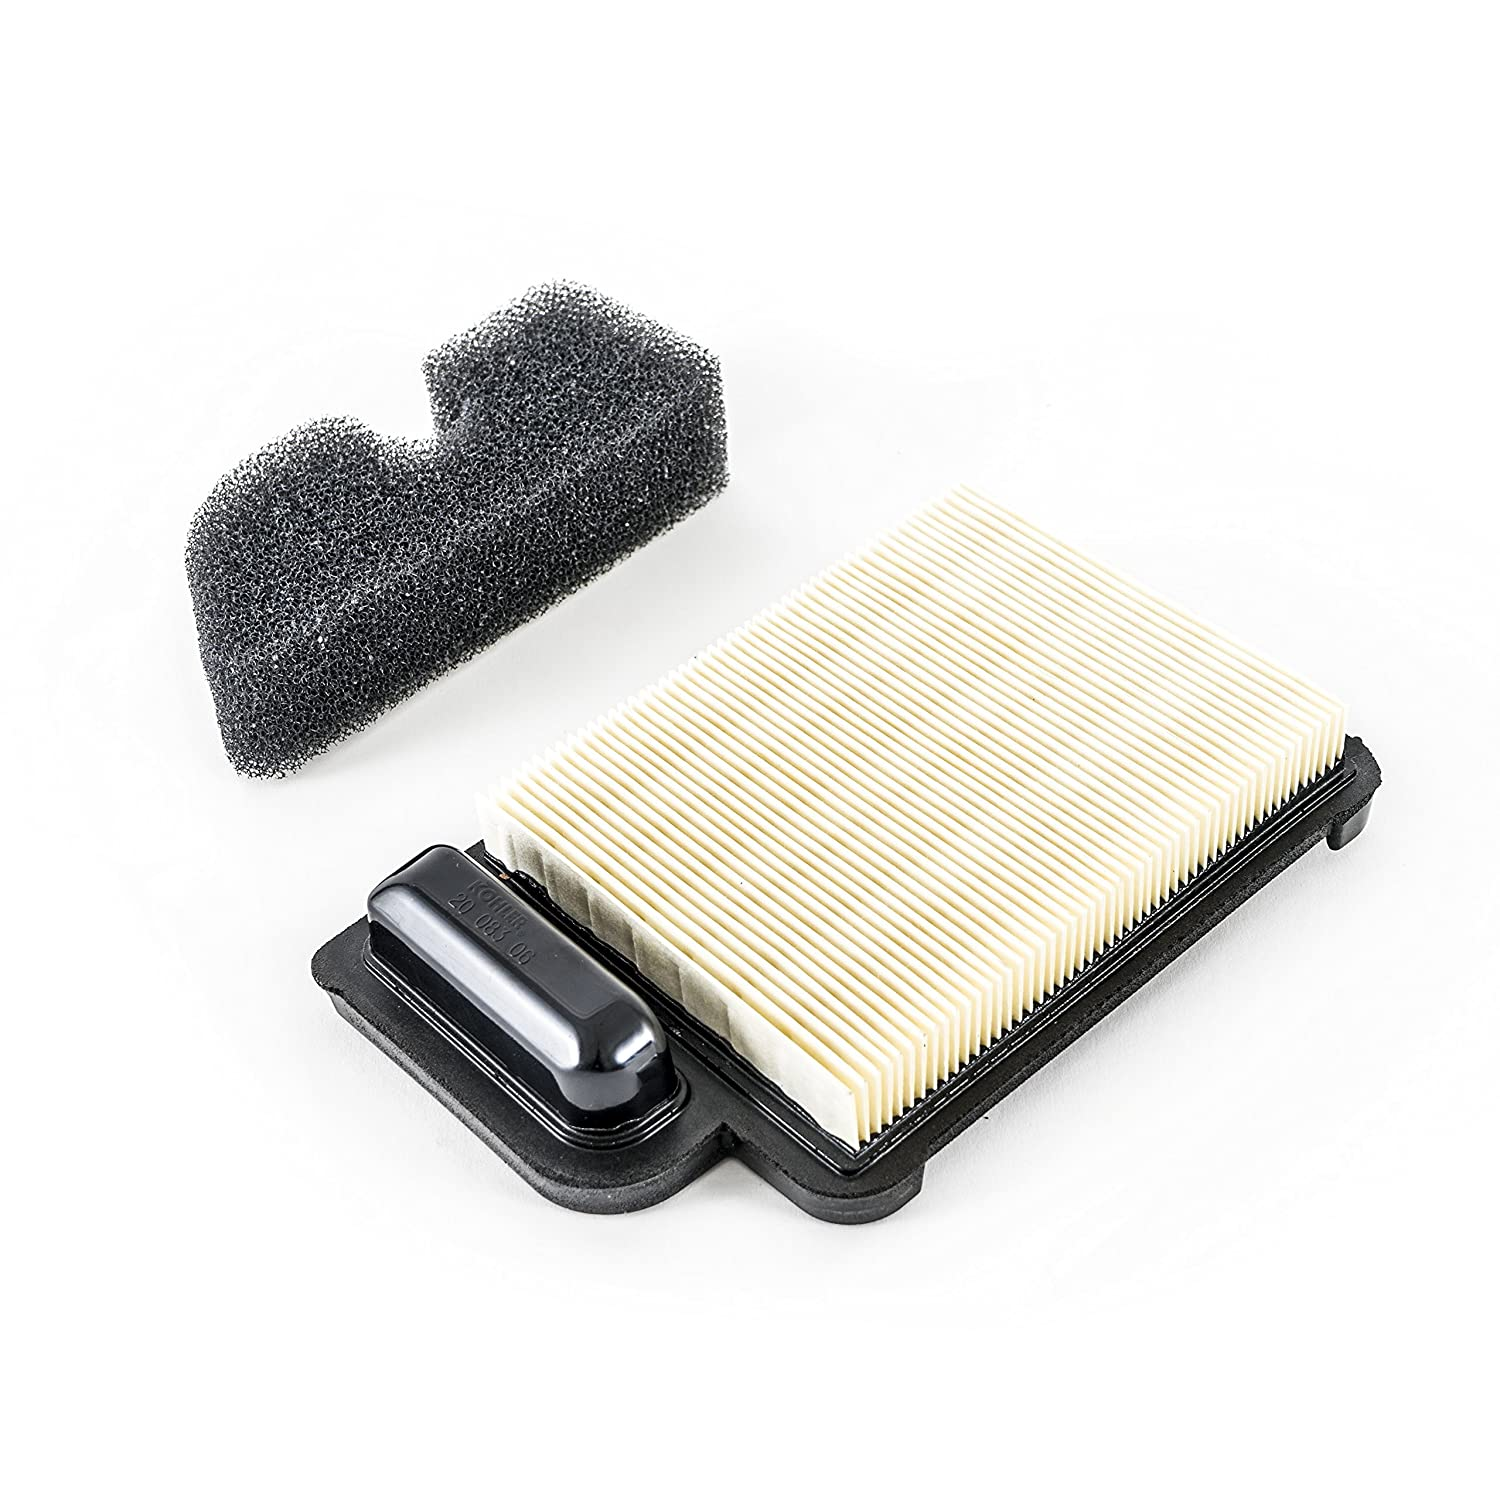 Air Filter for Kohler Courage Single-Cylinder 4-cycle Engines 2088302S1C